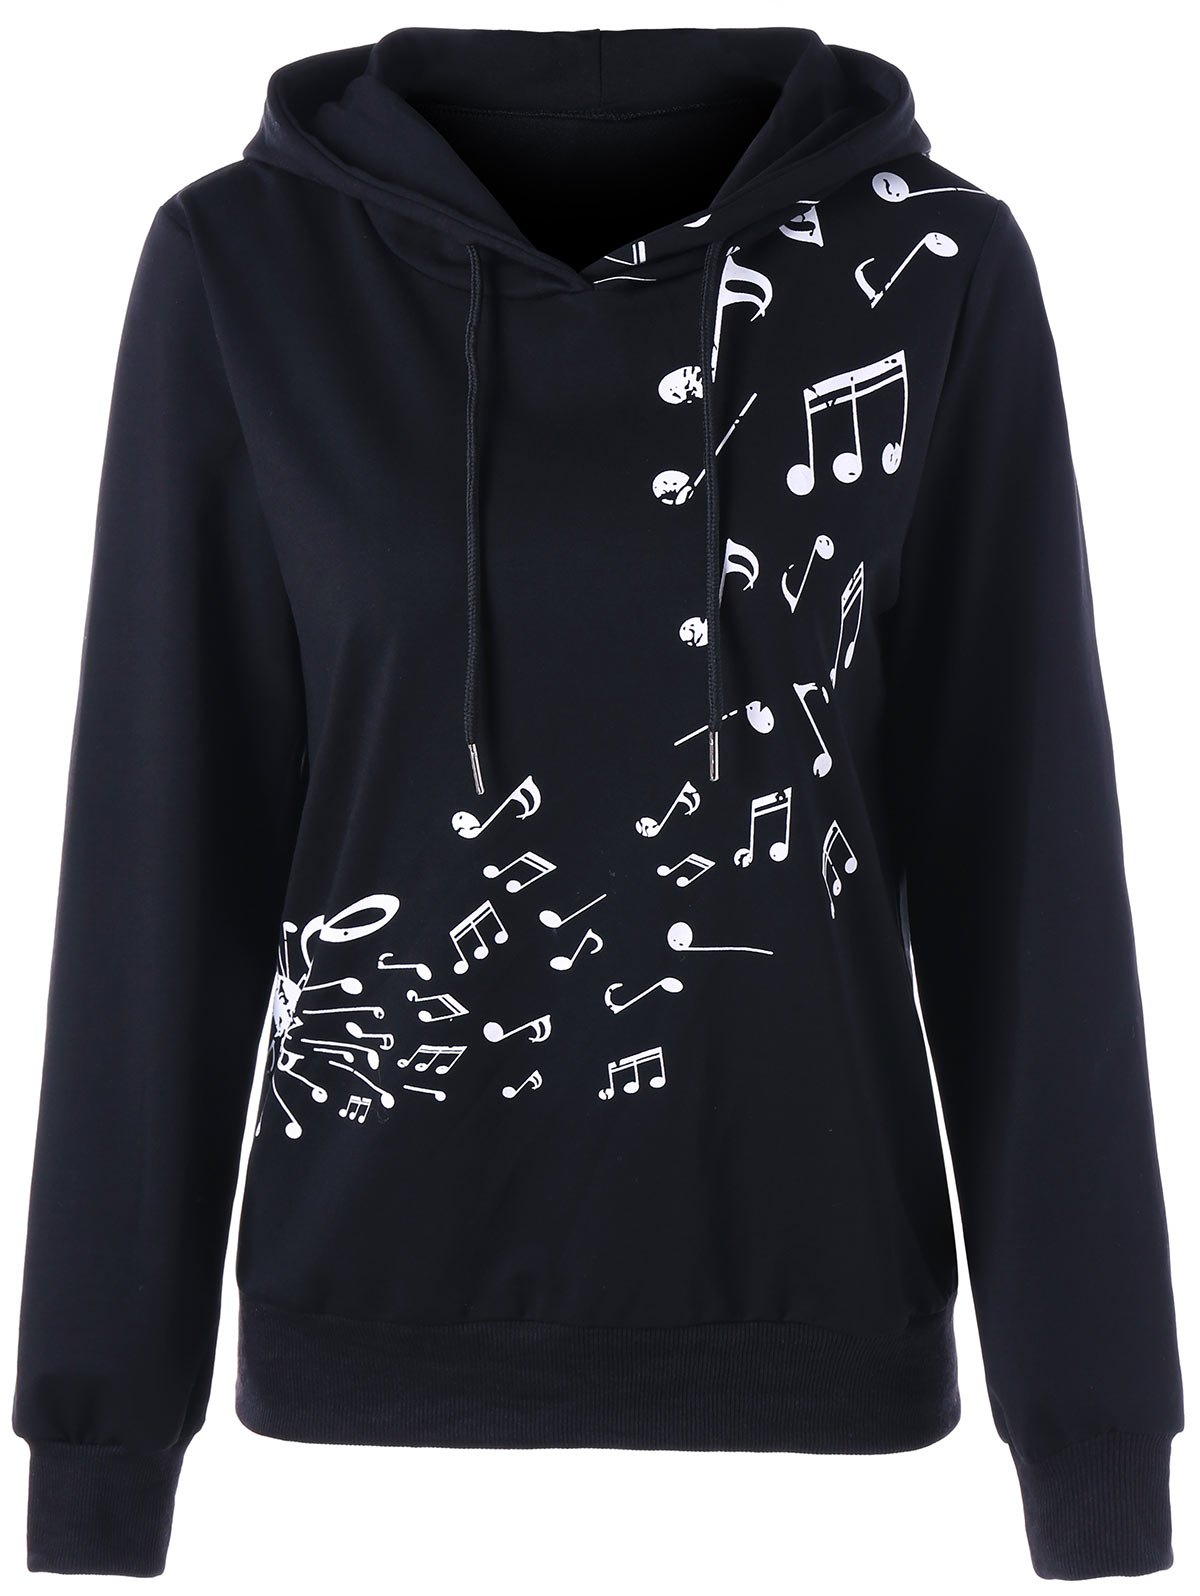 Music Note Two Tone HoodieWOMEN<br><br>Size: 2XL; Color: BLACK; Material: Polyester; Shirt Length: Regular; Sleeve Length: Full; Style: Fashion; Pattern Style: Others; Season: Fall,Spring; Weight: 0.4600kg; Package Contents: 1 x Hoodie;